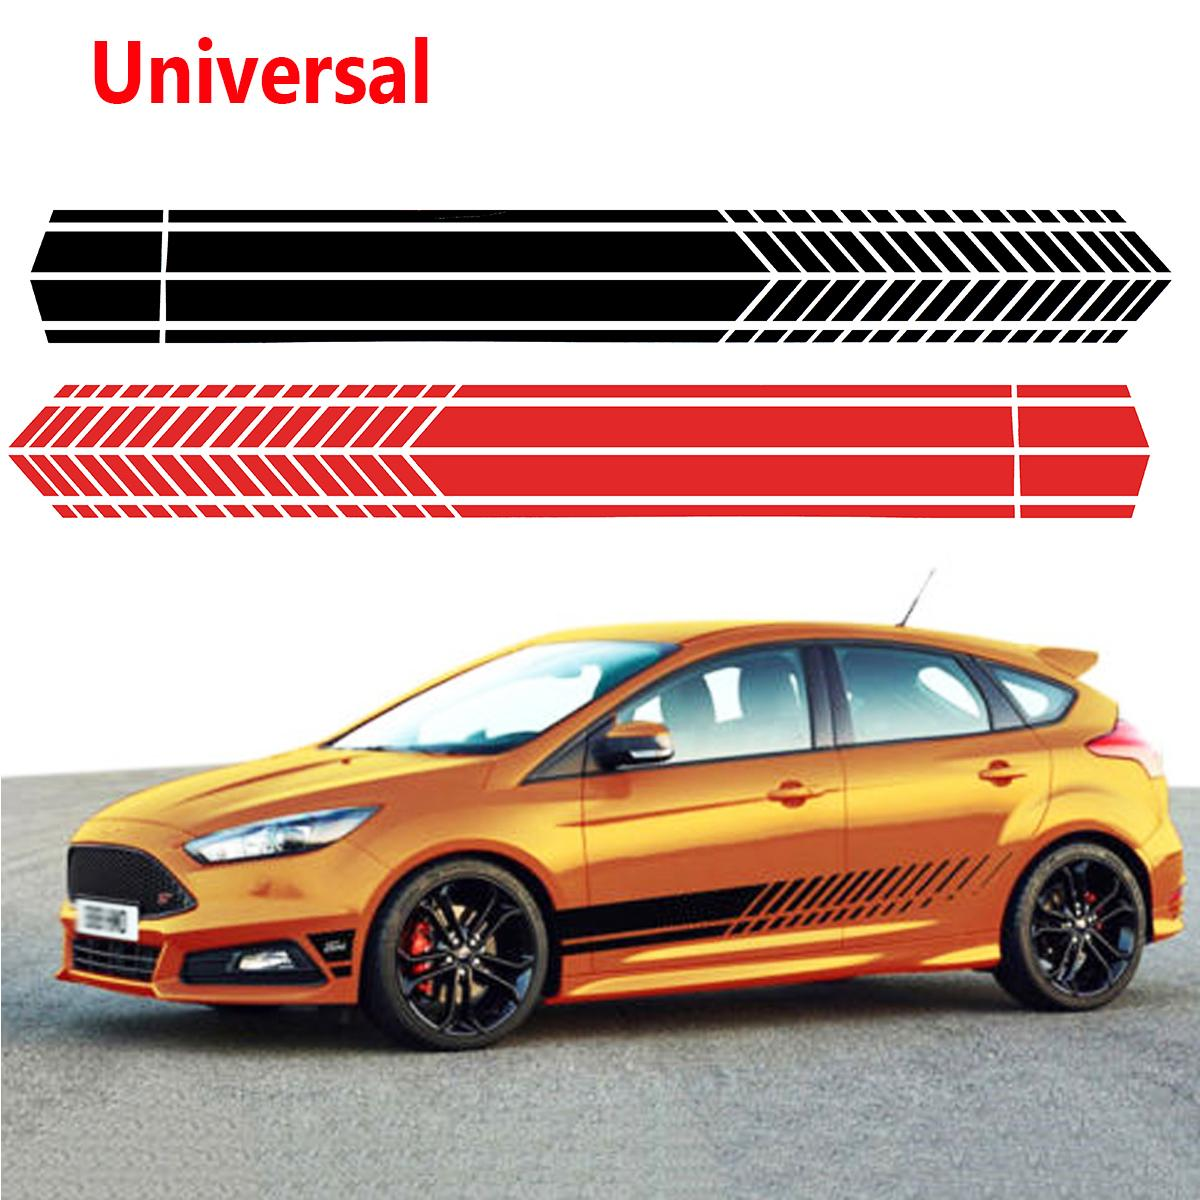 1x Racing Car SUV Decal Stickers Auto Reflective Car Truck Vinyl Graphic Random